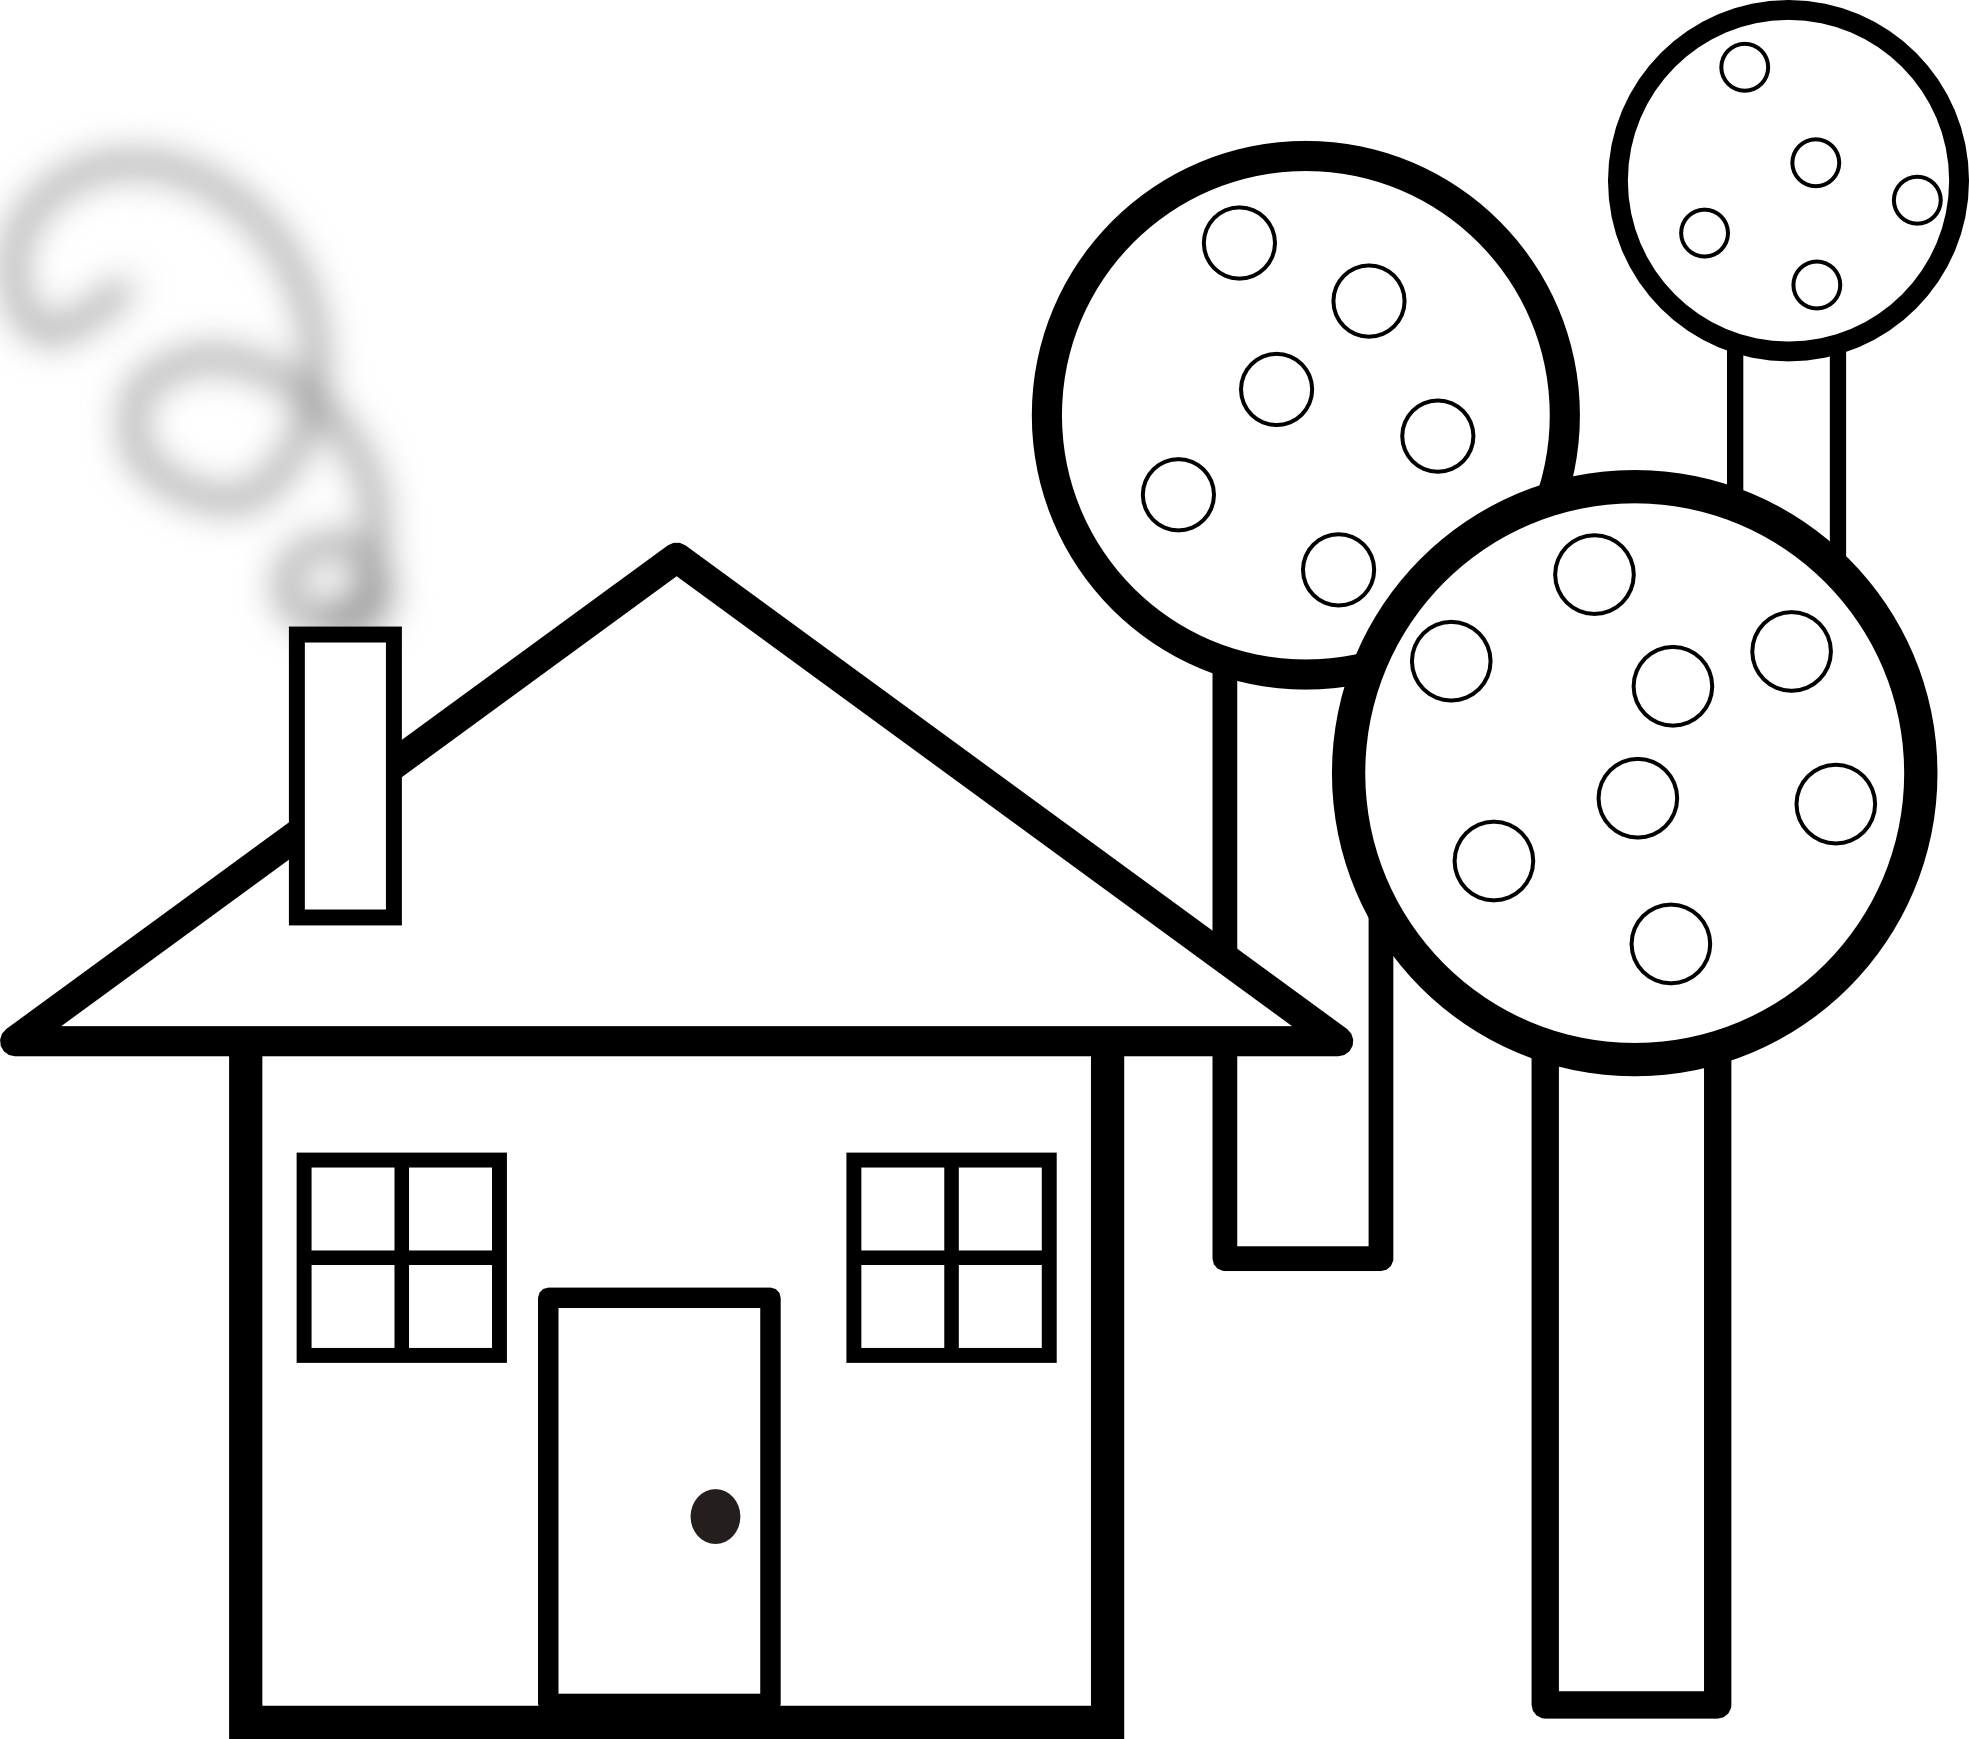 Clipart house sketch jpg library Haunted House Coloring Page | Clipart Panda - Free Clipart Images jpg library